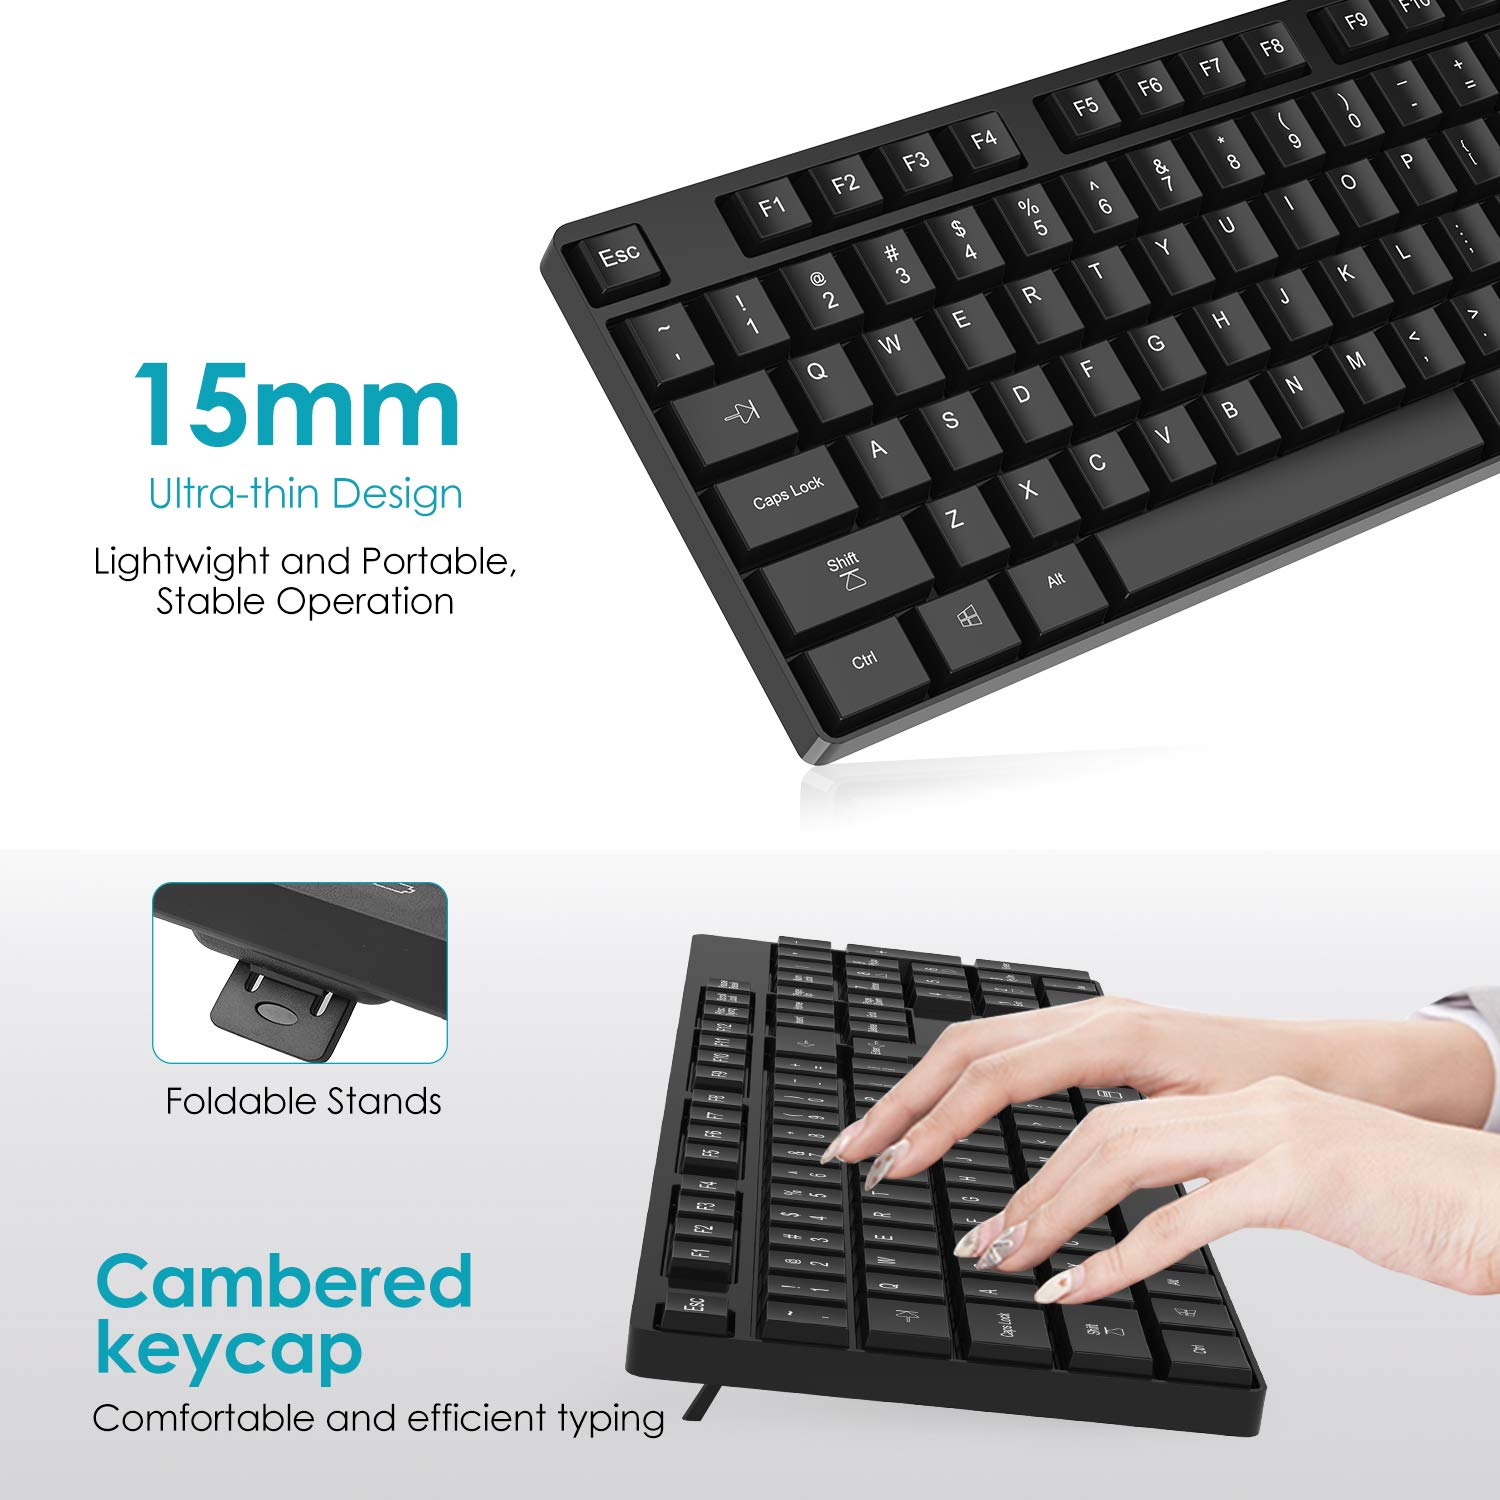 Philips Wireless Keyboard and Mouse Combo, Ultra-thin Ergonomic Keyboard and Mute Mouse, 2.4GHz 32ft Wireless Connection with USB Receiver for PC Desktop Computer Laptop Mac Tablet (Black)